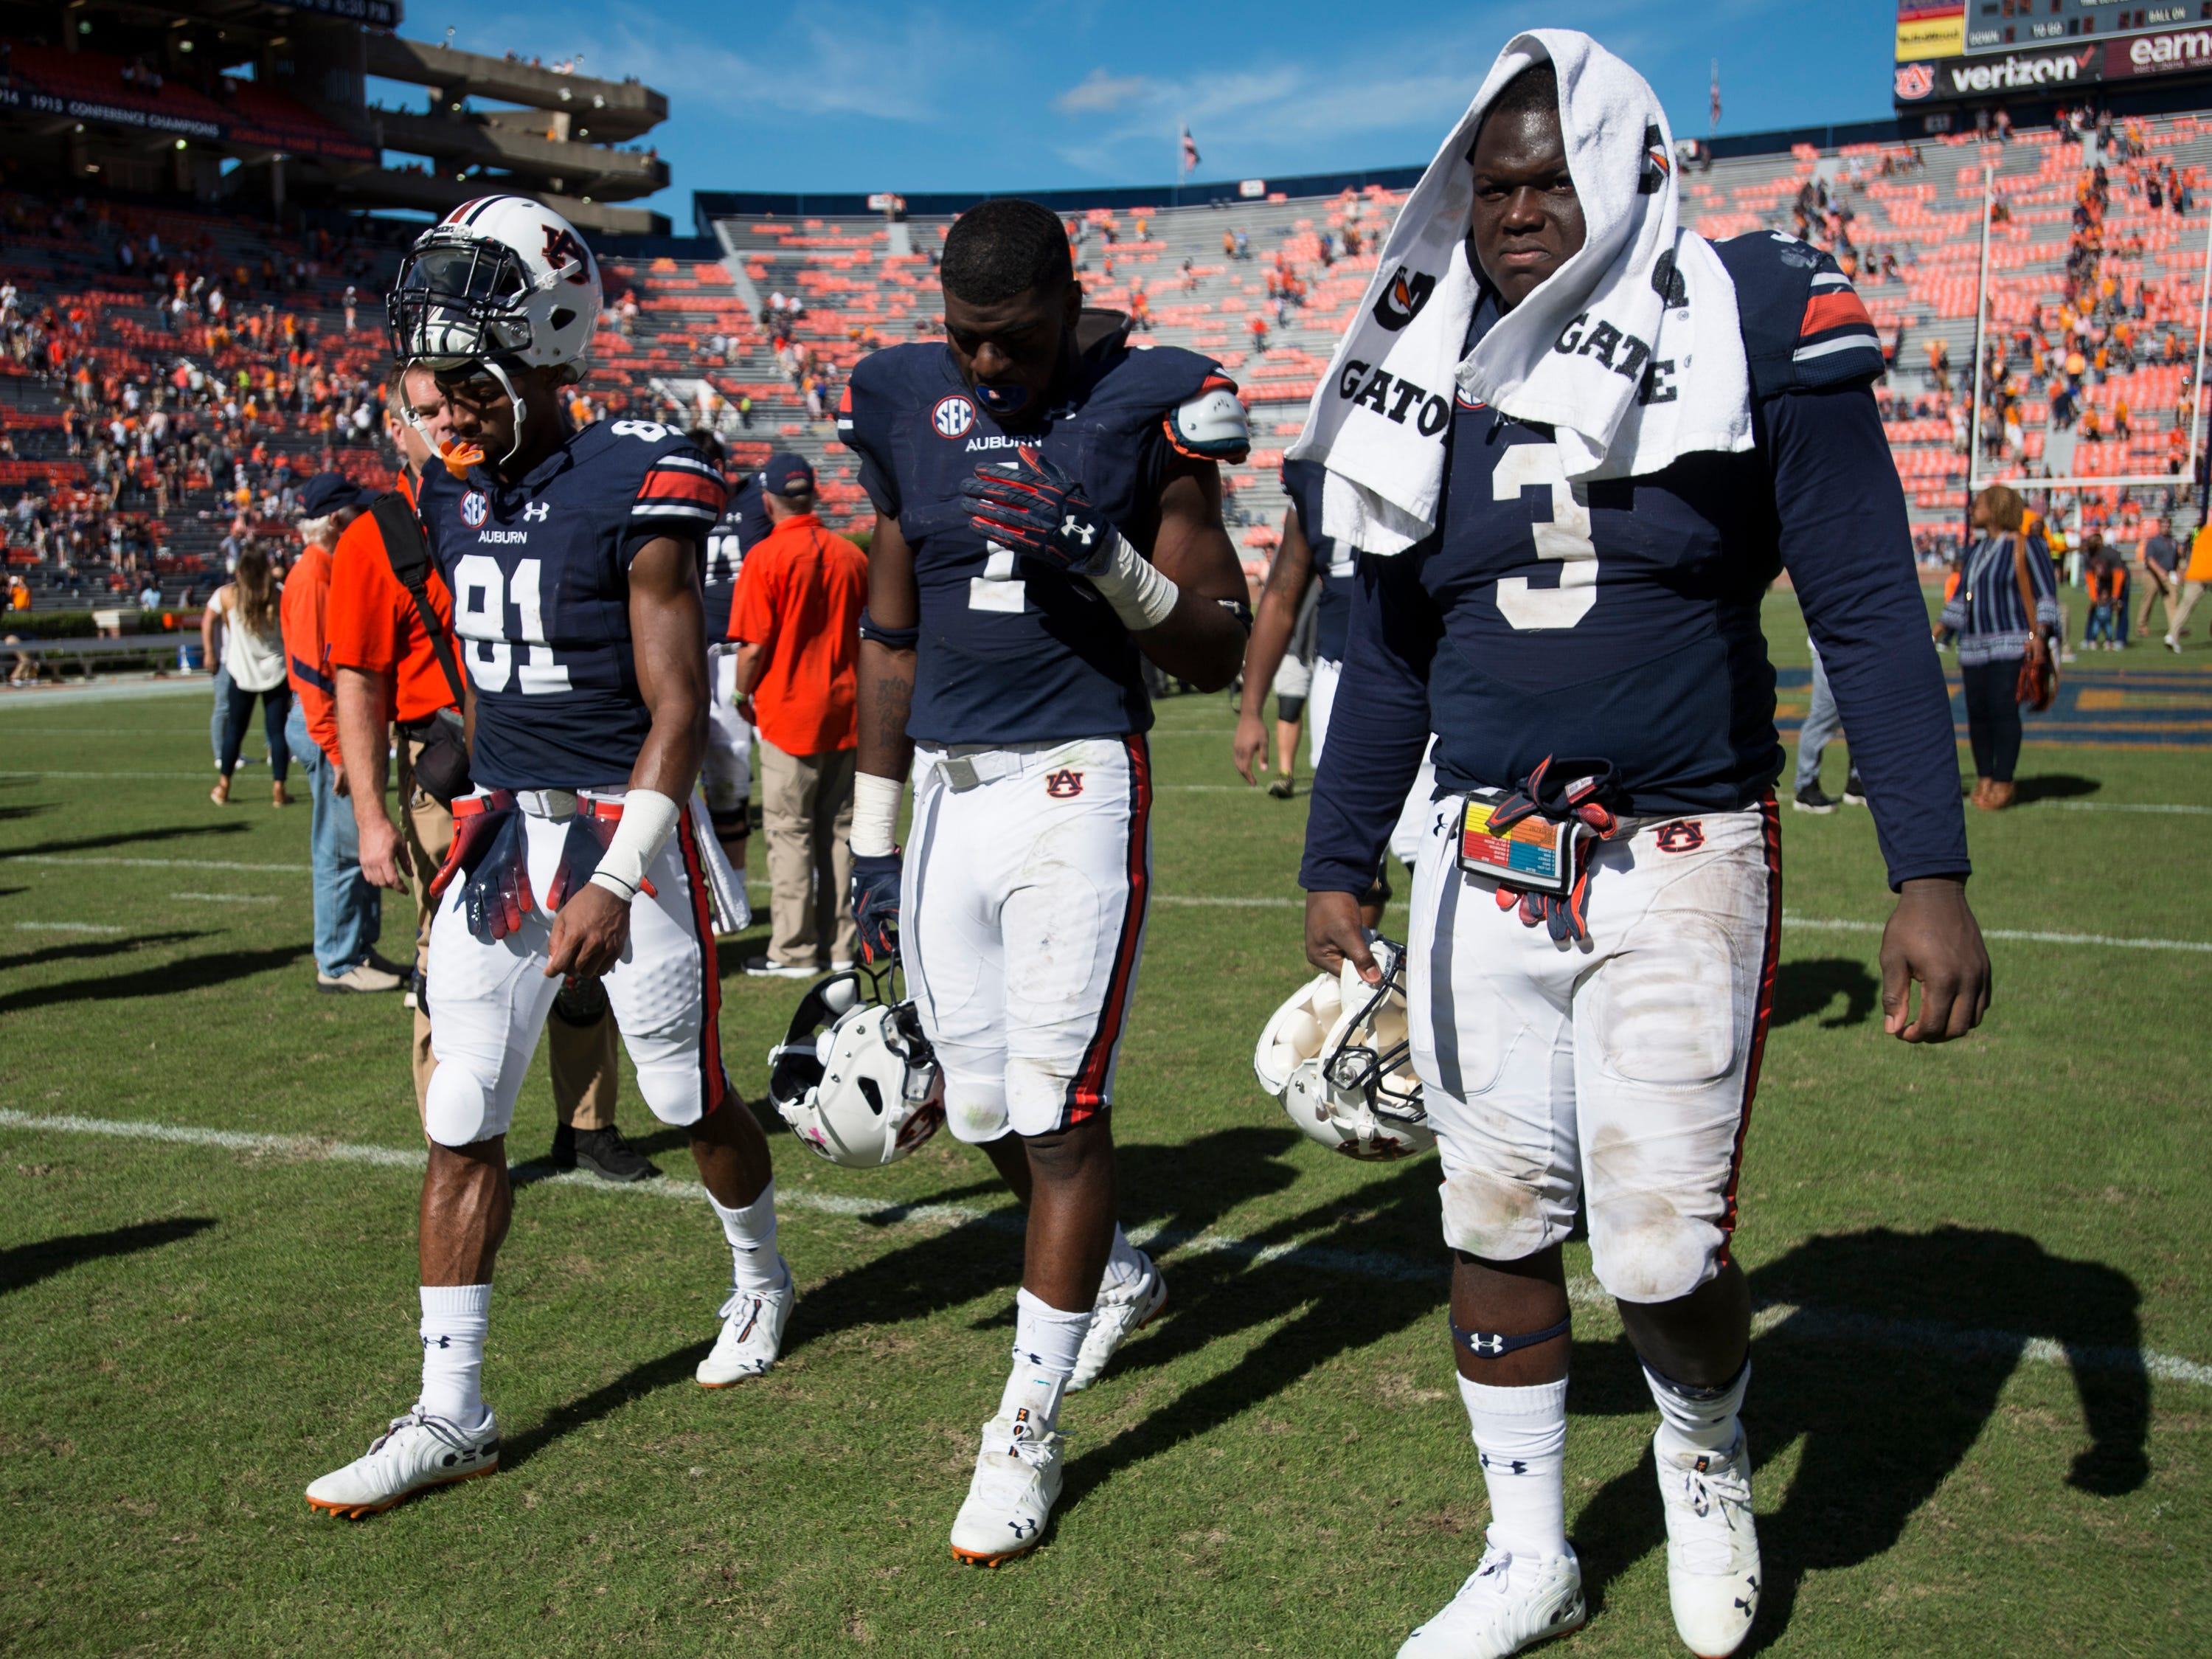 Auburn's Darius Slayton (81), Big Kat Bryant (1) and Marlon Davidson (3) walk off the field after the game at Jordan-Hare Stadium in Auburn, Ala., on Saturday, Oct. 13, 2018. Tennessee defeated Auburn 30-24.